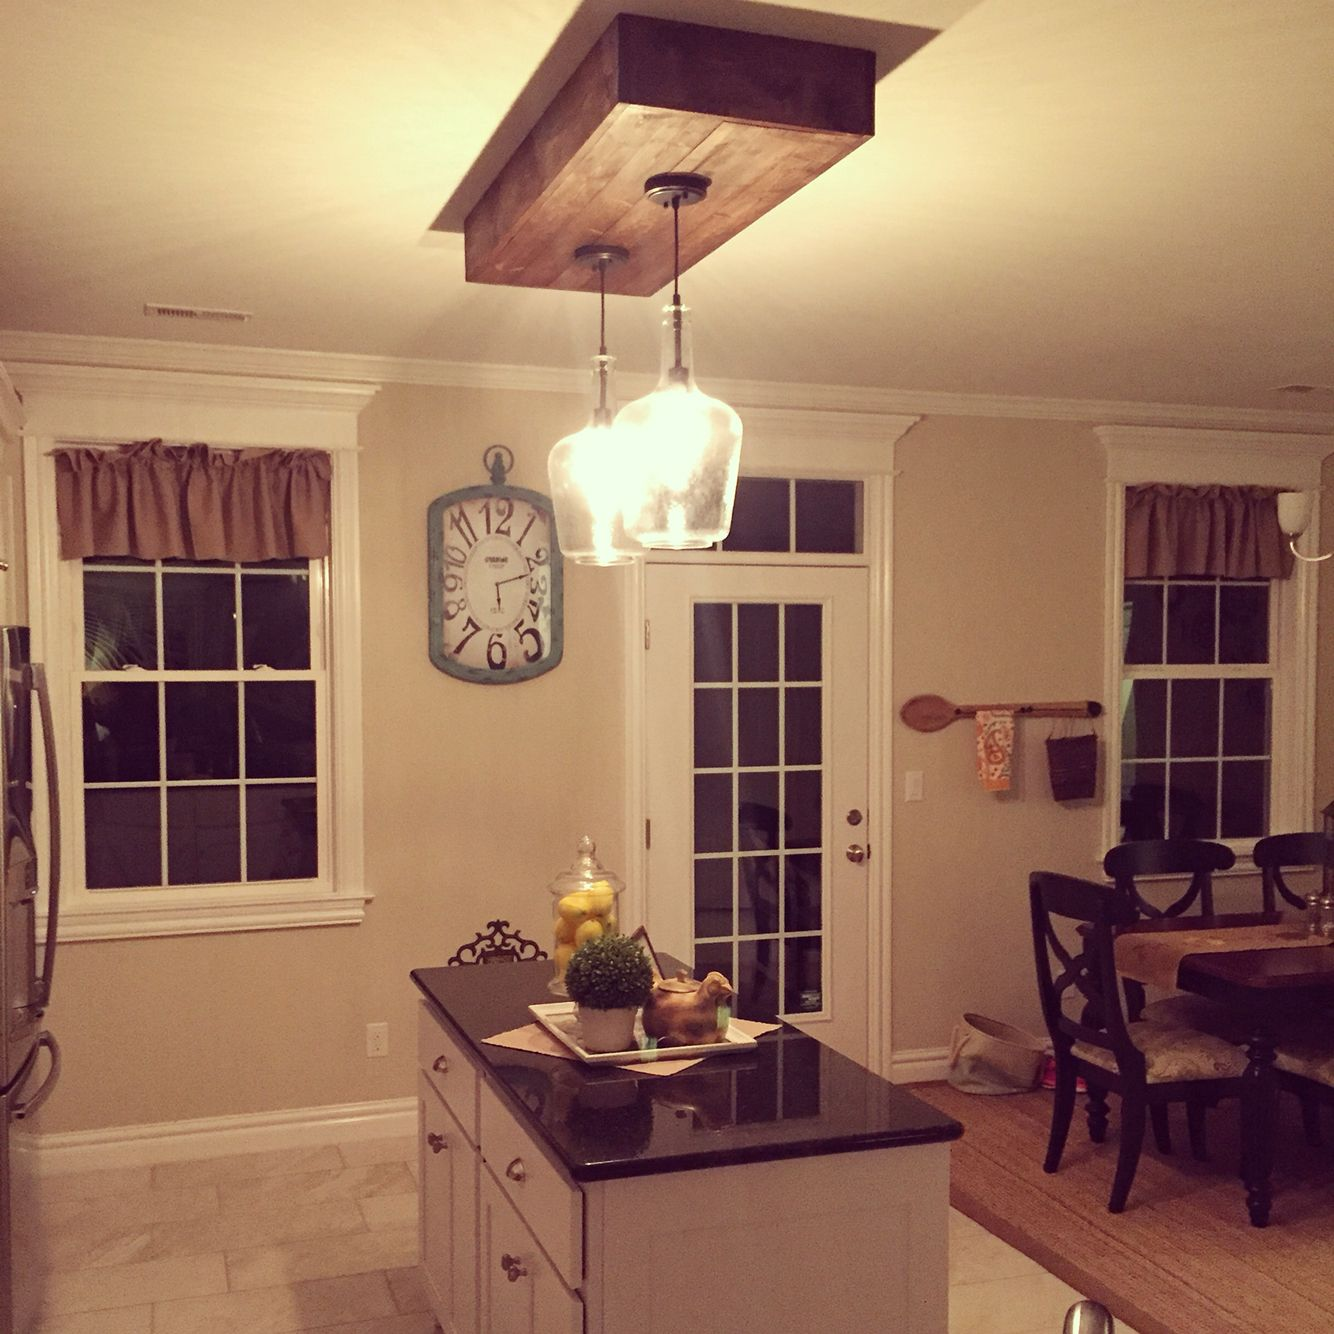 Kitchen Lighting Fluorescent: Replaced The Fluorescent Lighting...Kitchen Island